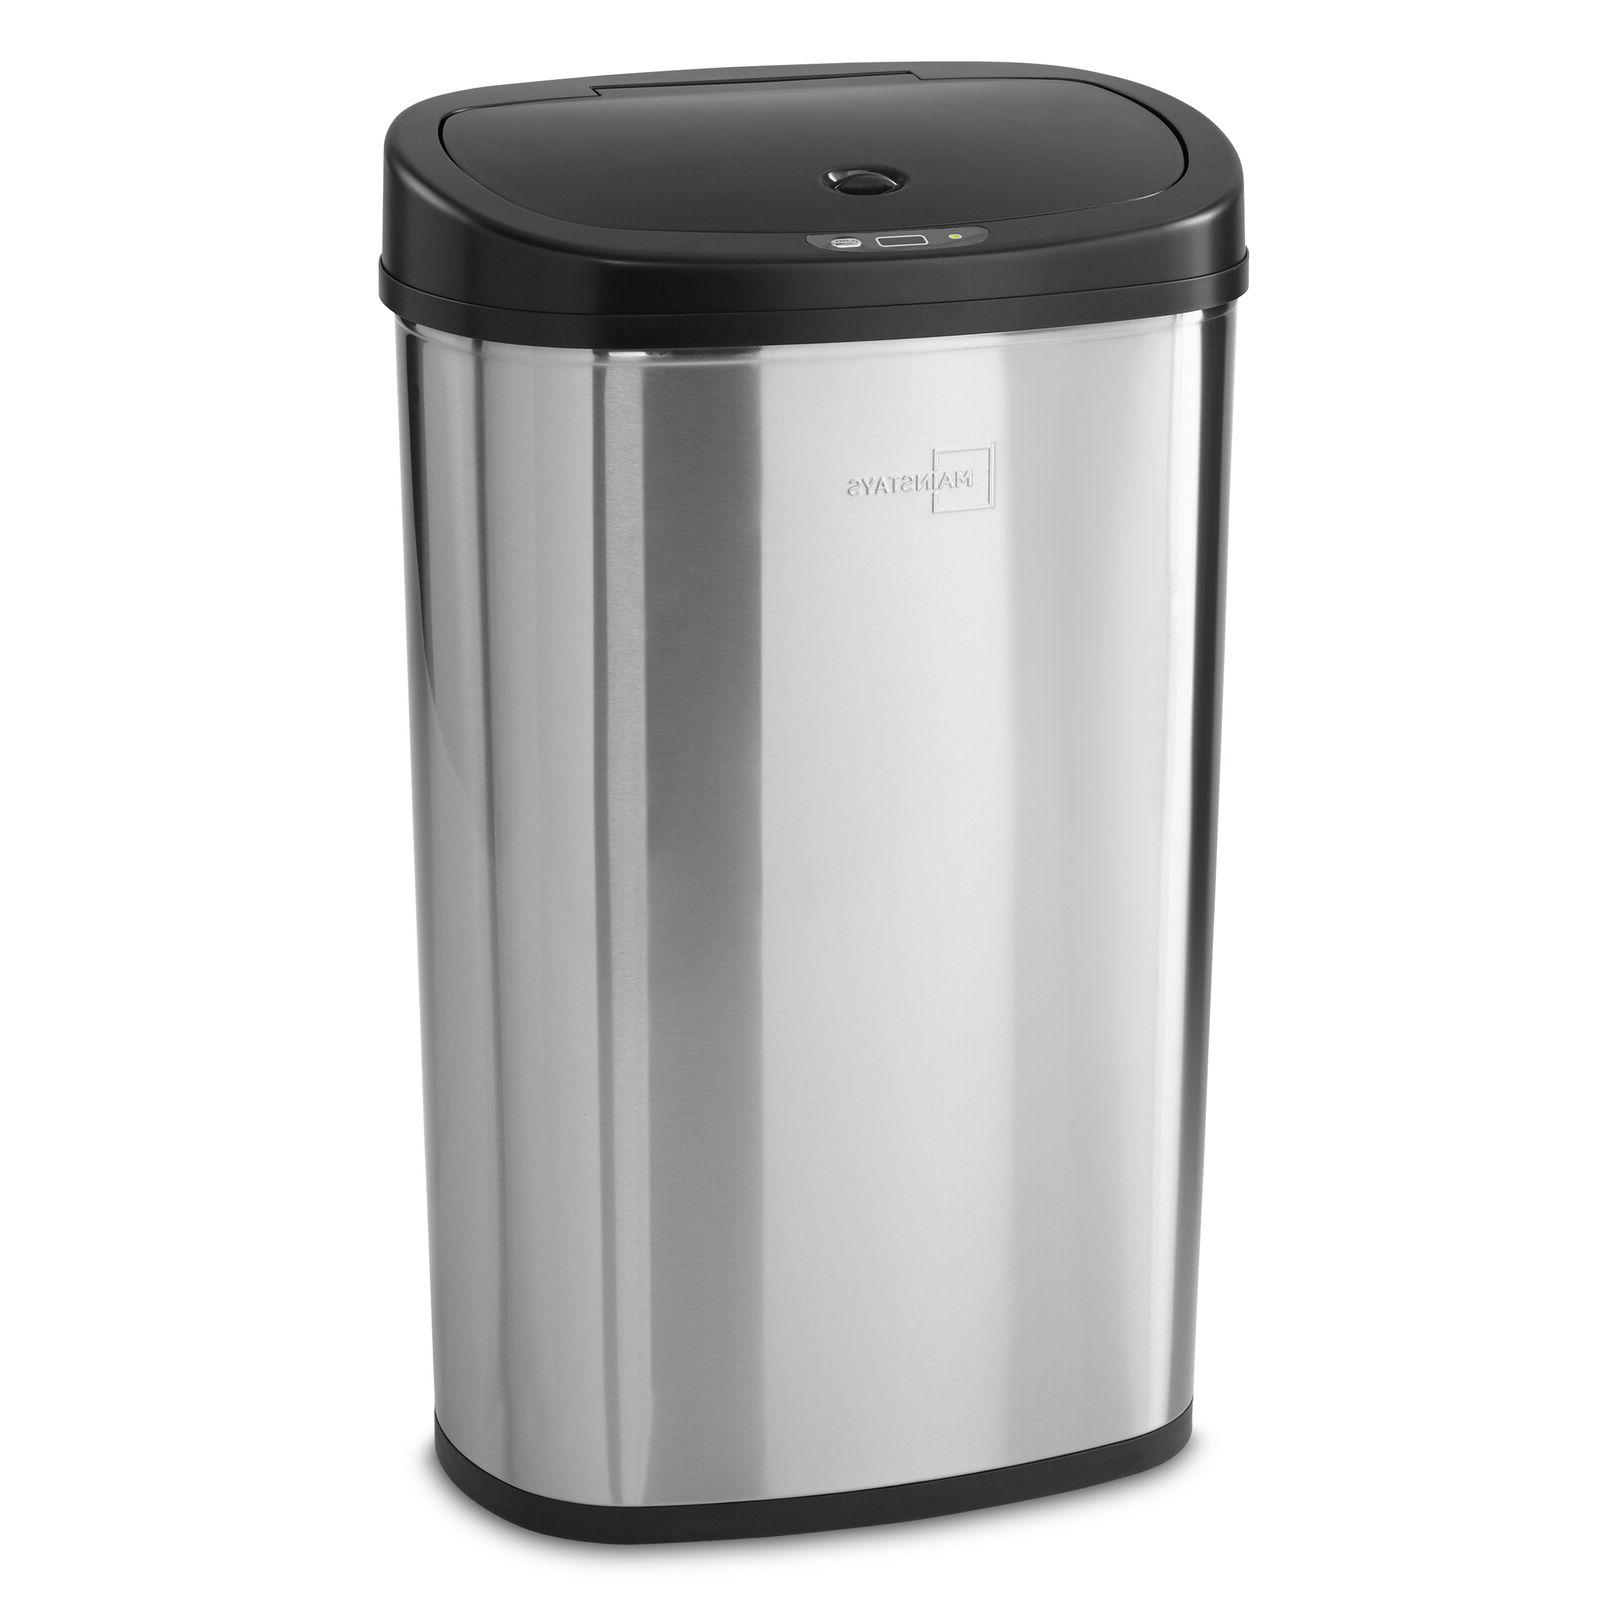 sale off motion sensor trash can 13